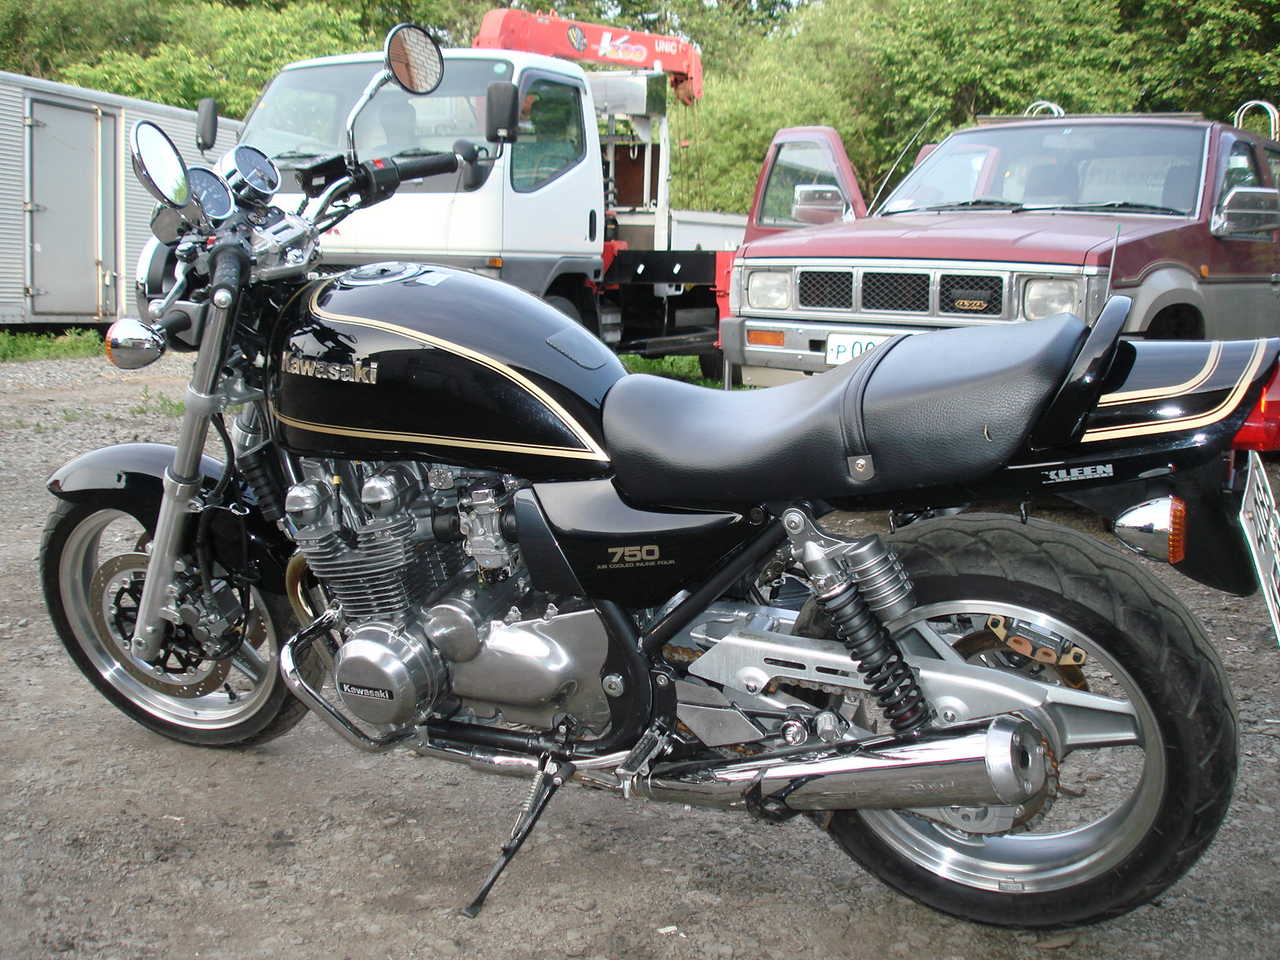 Used Kawasaki Engines For Sale